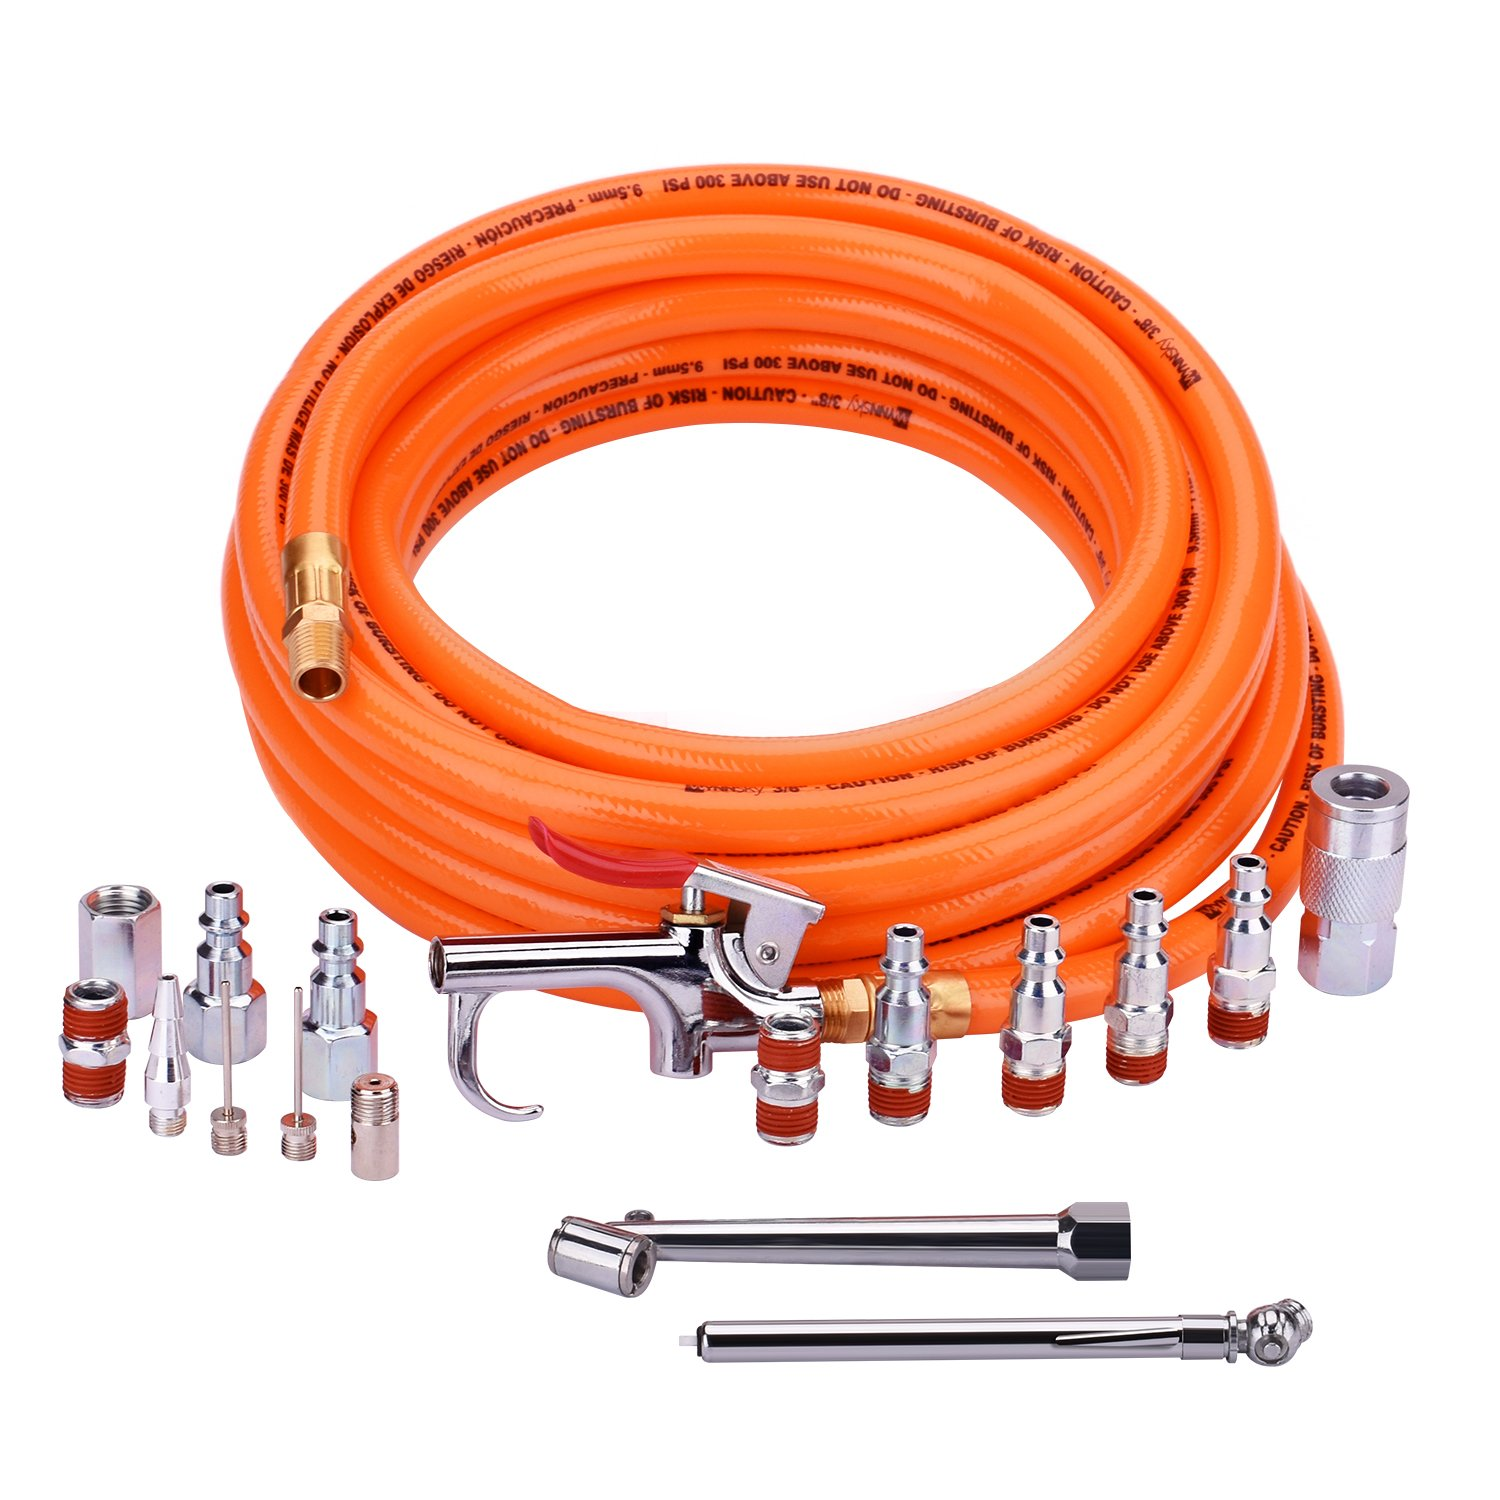 WYNNsky 3/8''X 25ft PVC Air Compressor Hose With 17 Piece Air Tool and Accessory Kit. Air Accessories Kit and Air Hose …